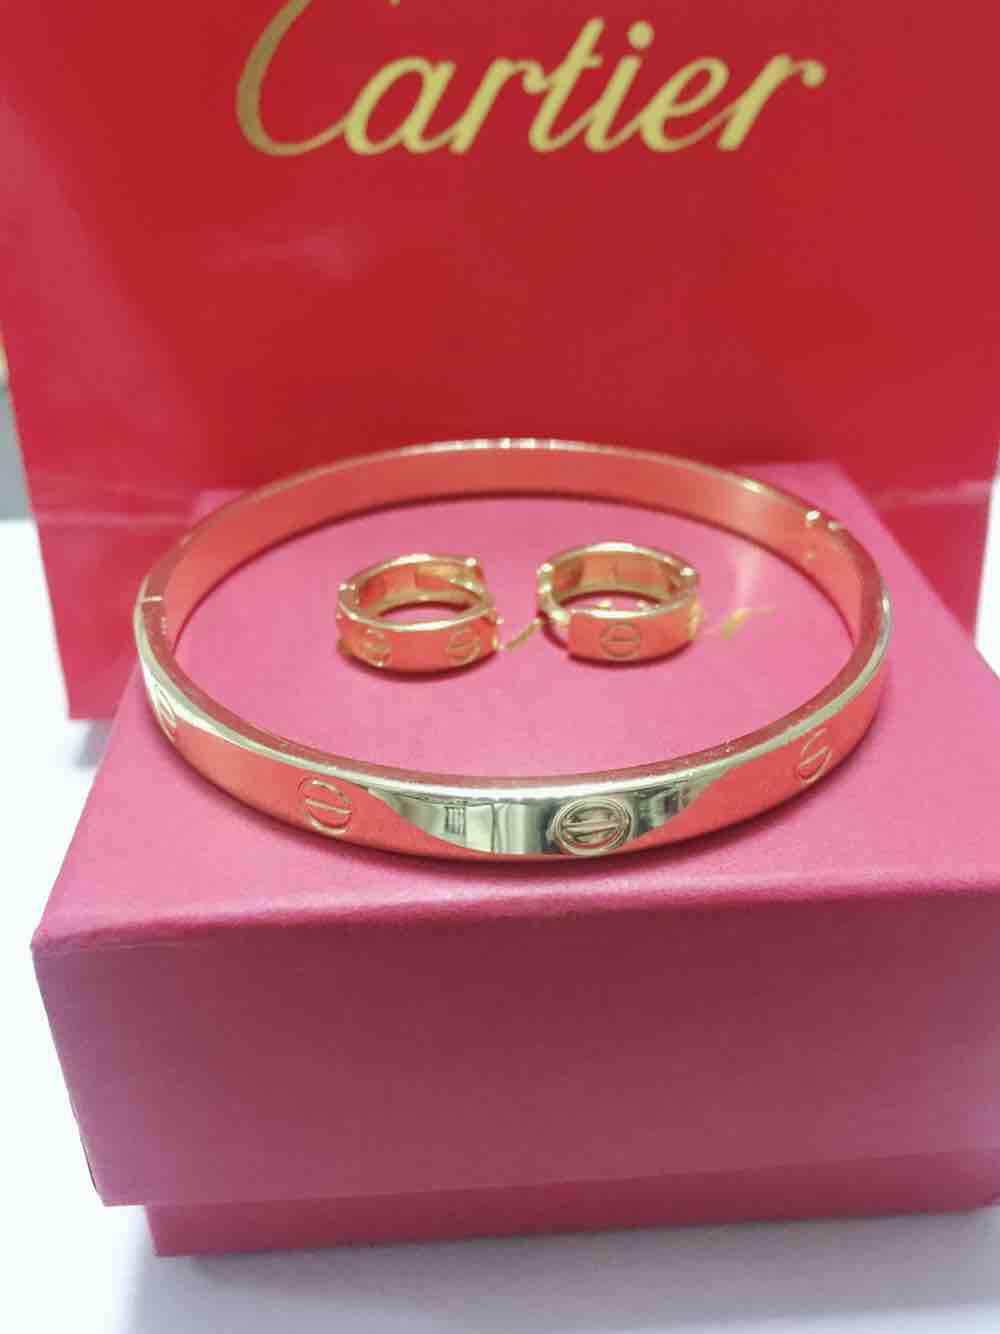 Bangkok Catierr bangles with earrings image on snachetto.com